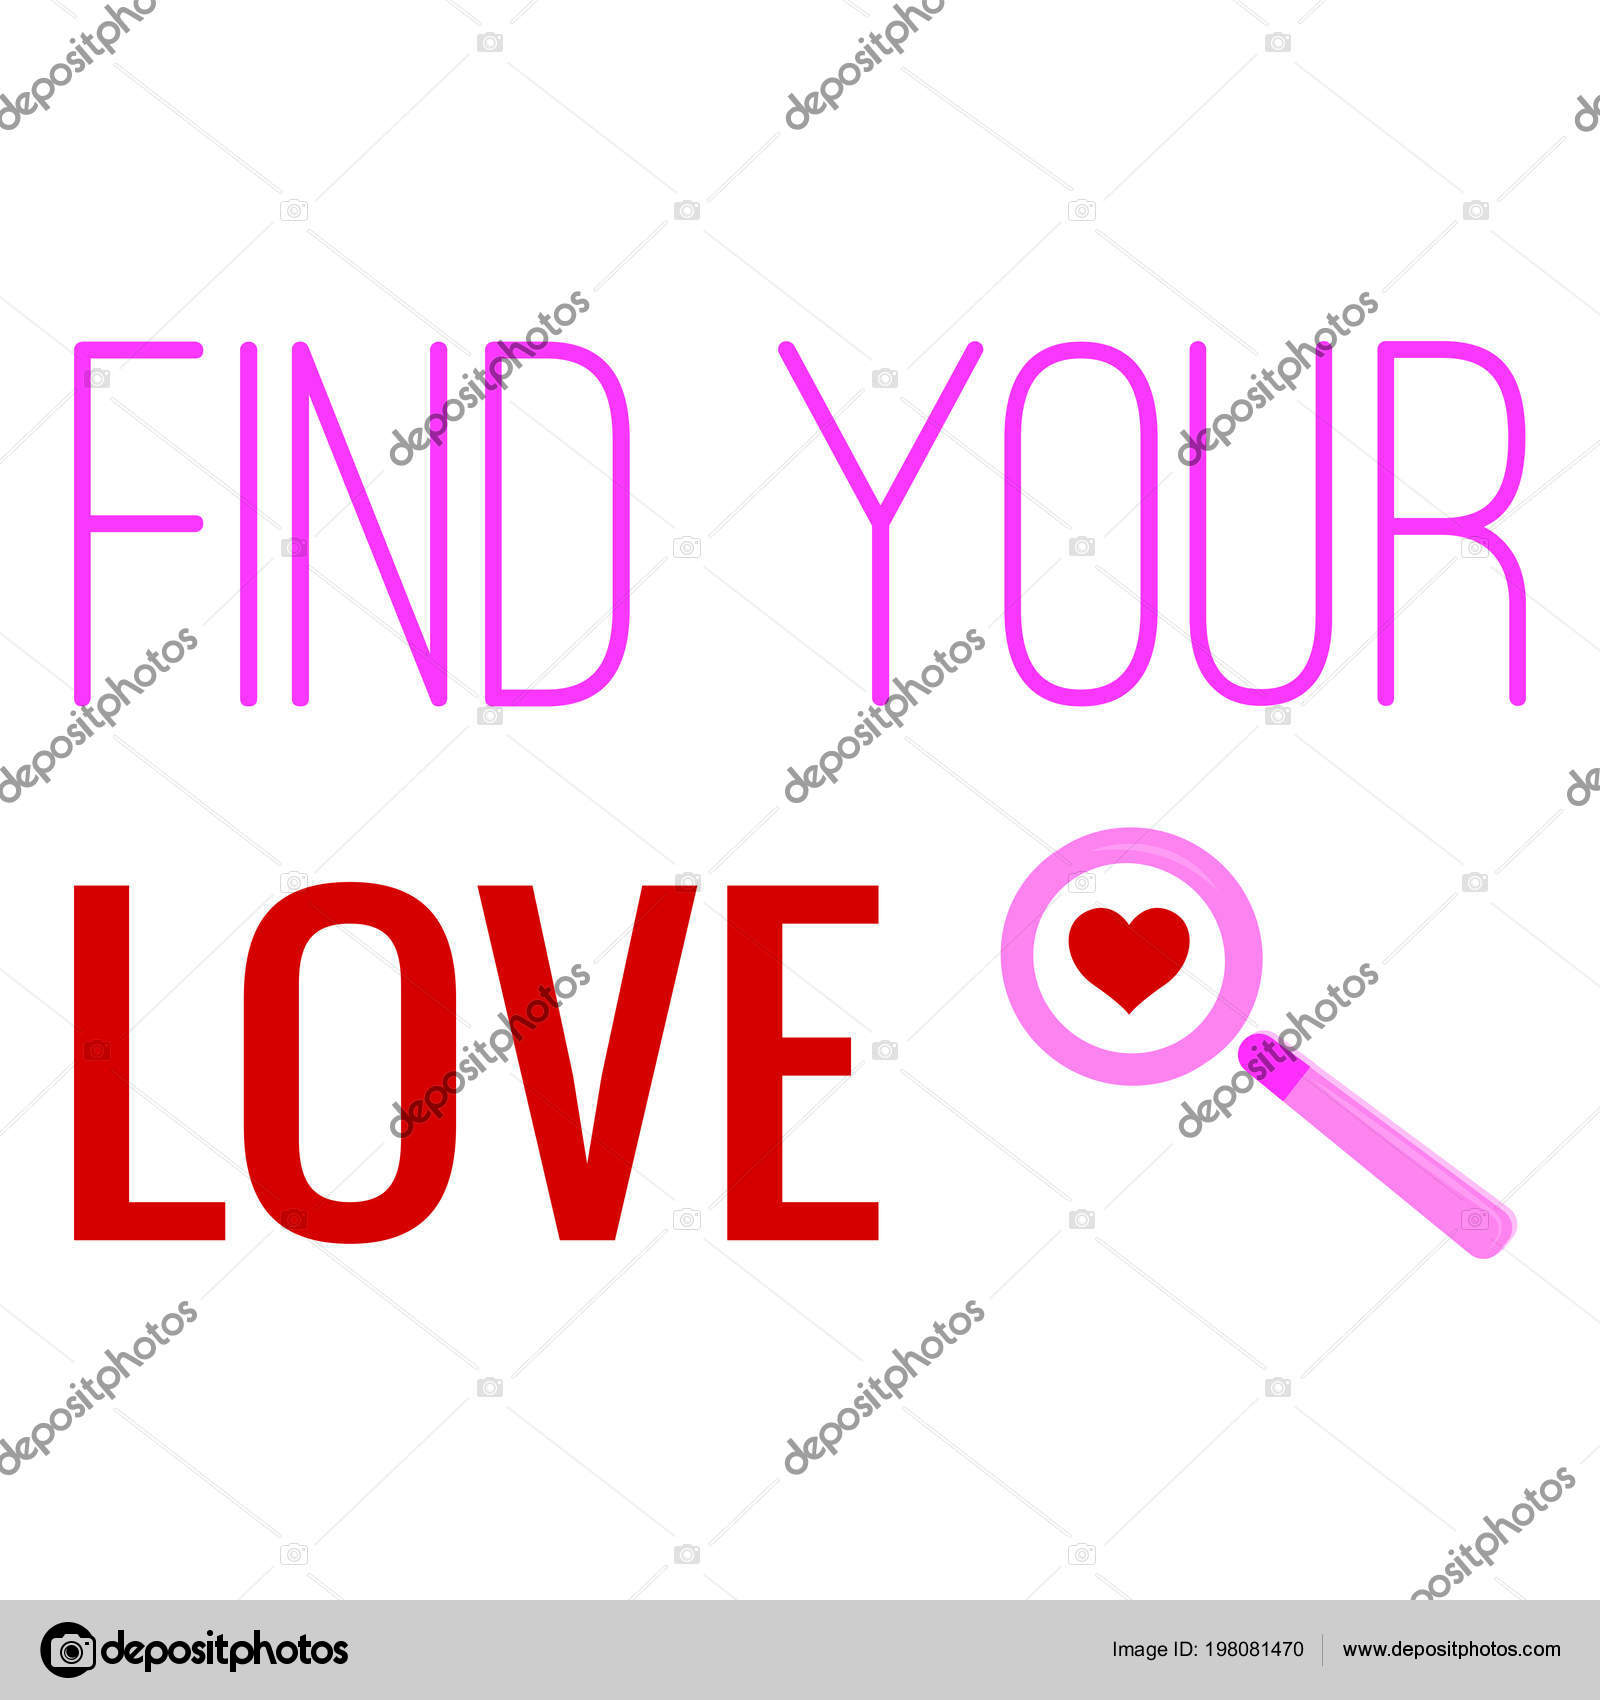 find your love download